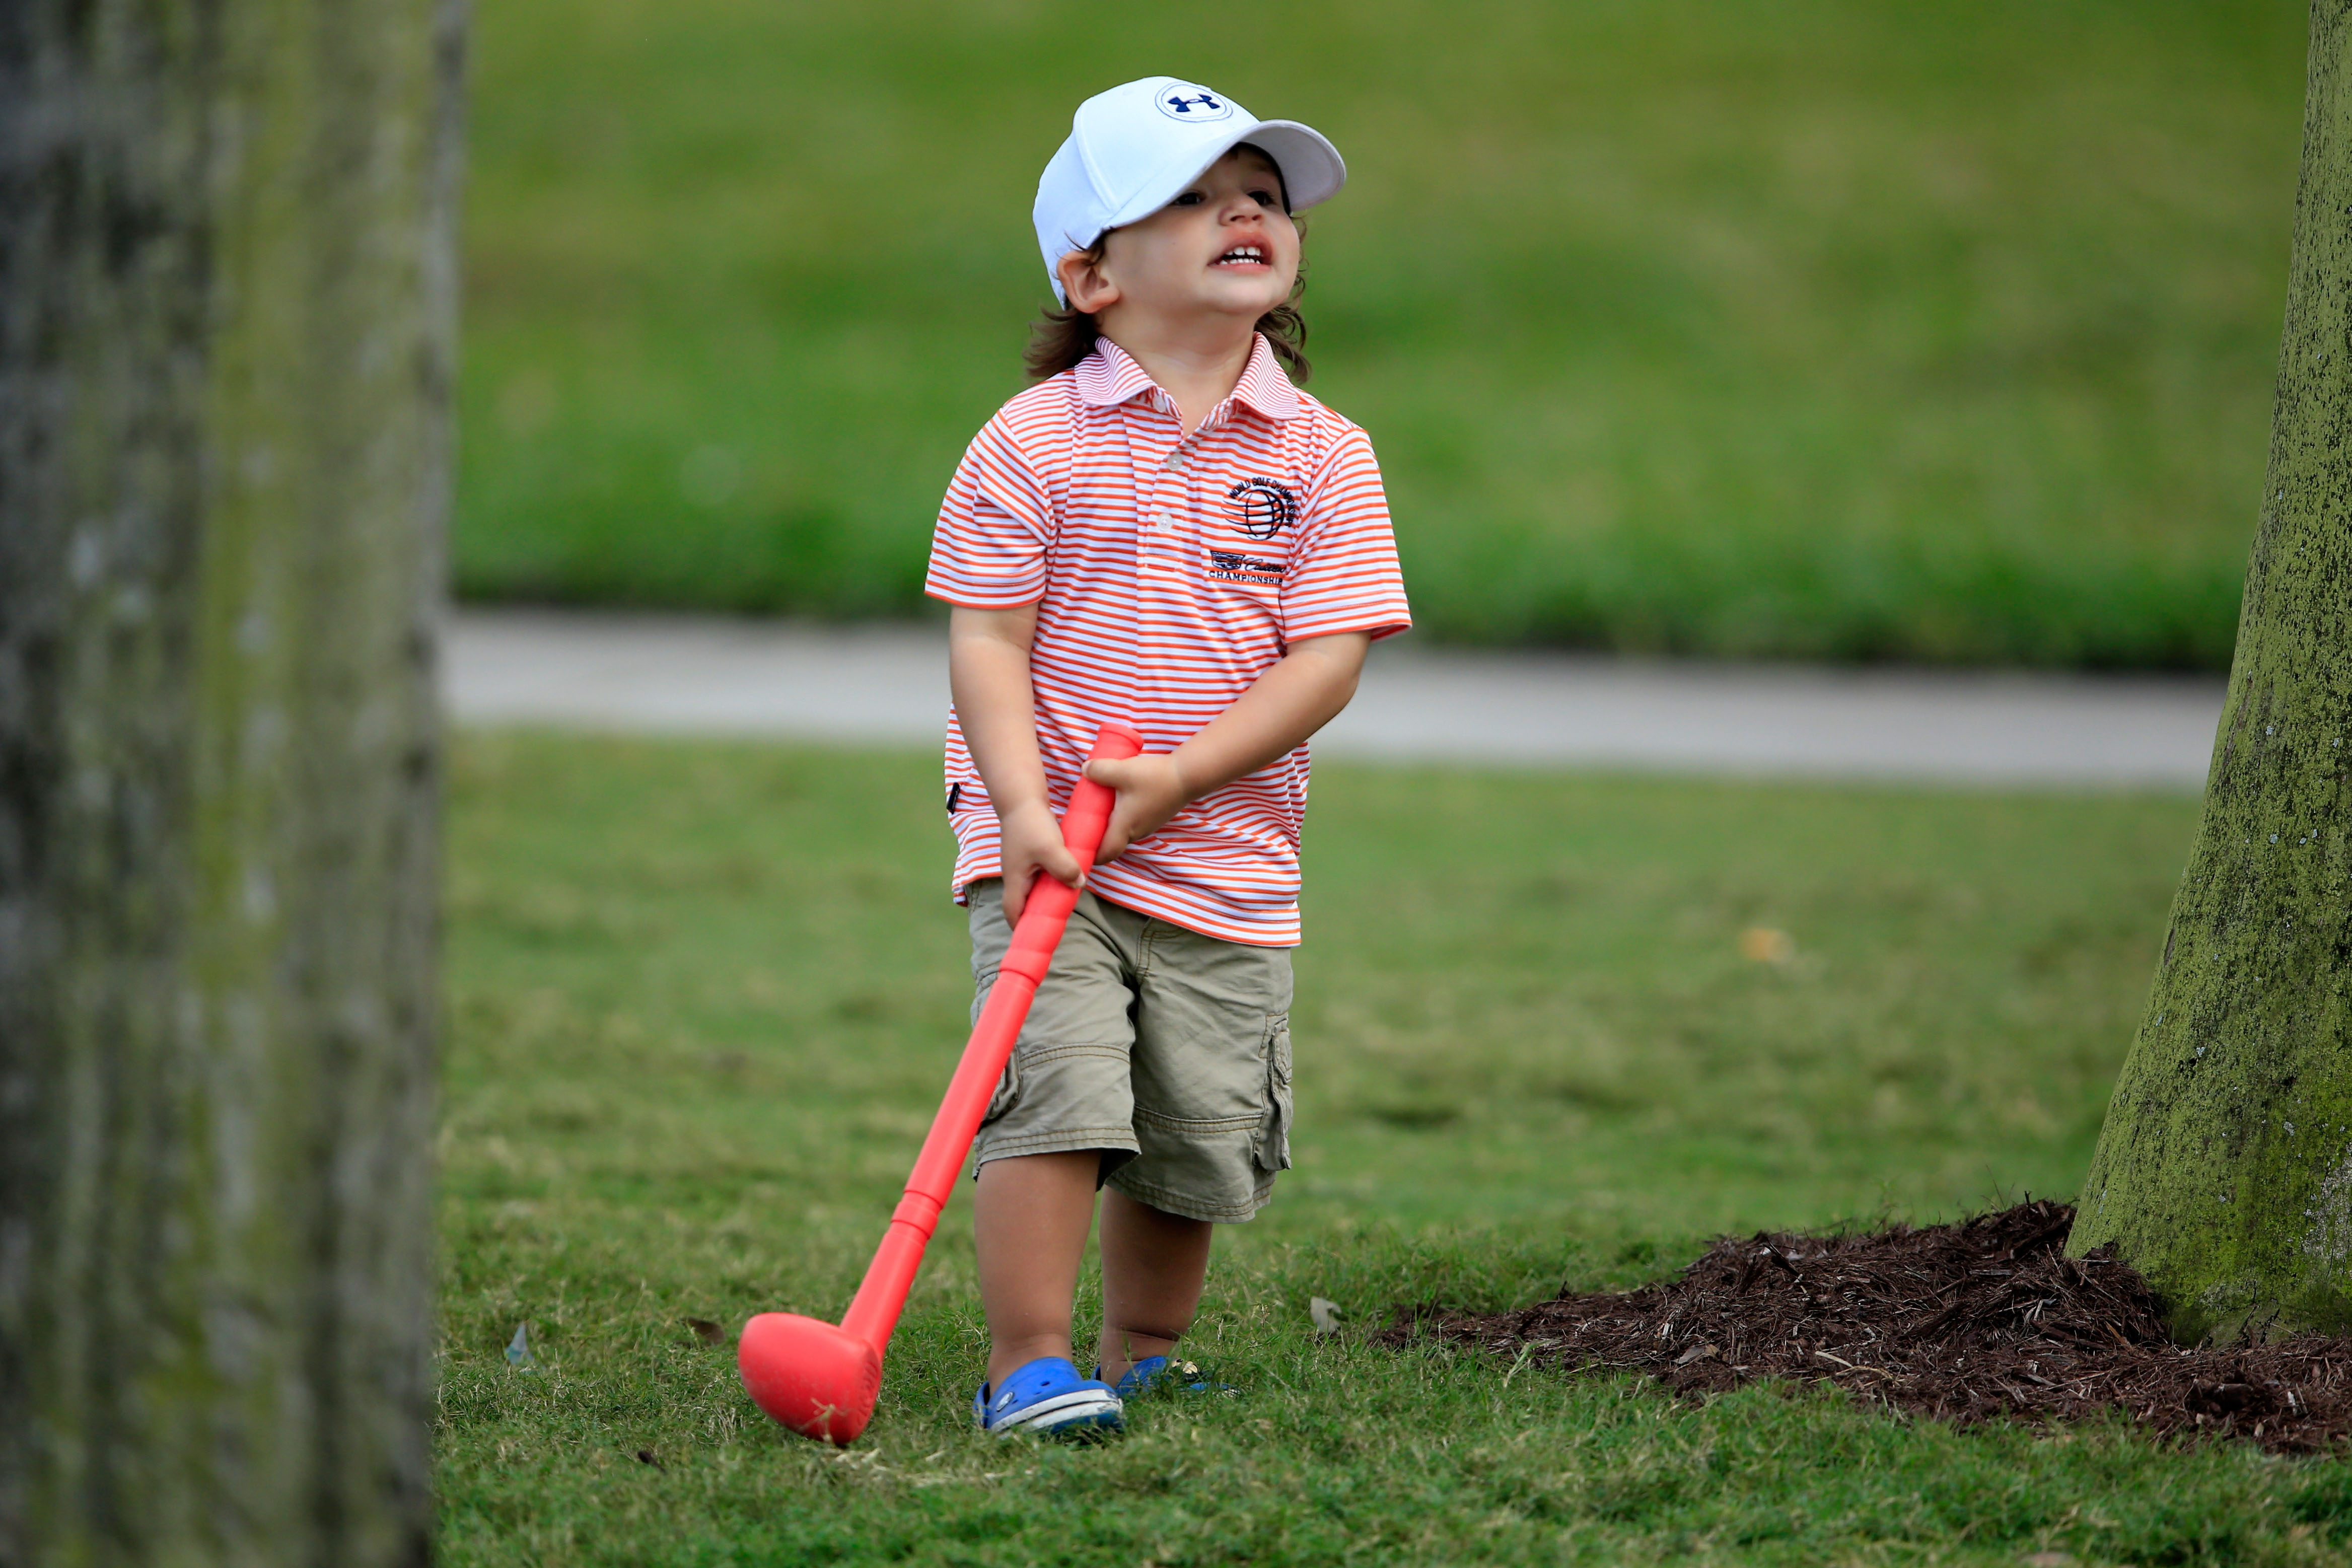 I'm coming for you, Jordan Spieth